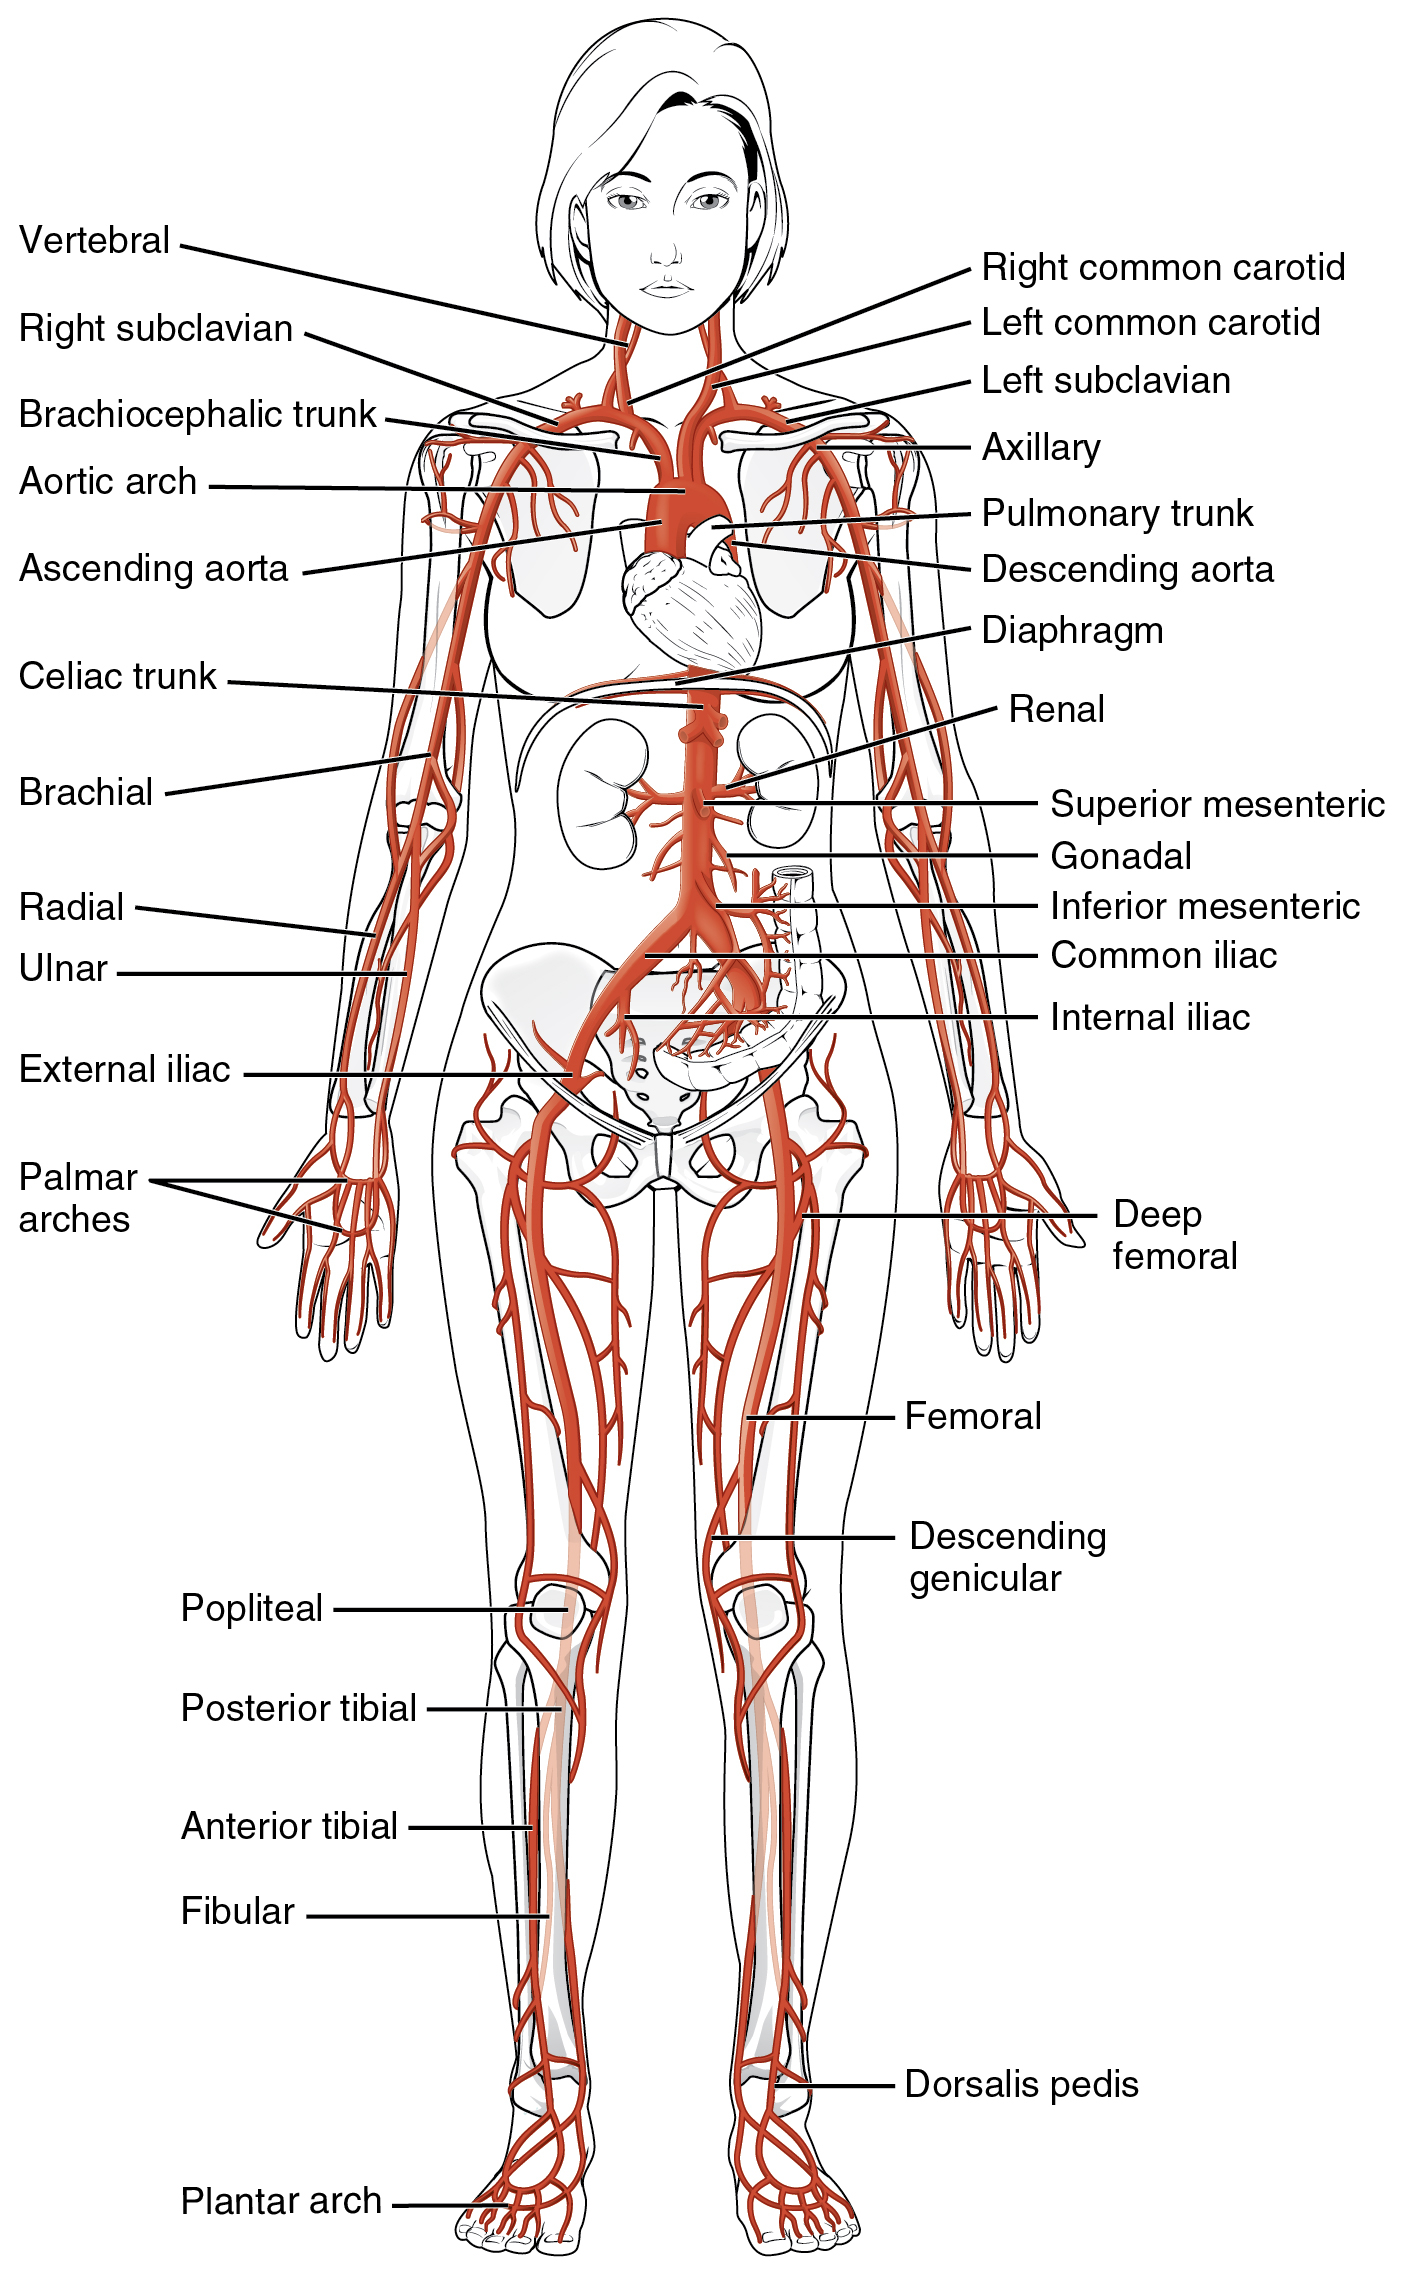 Arteries And Veins Diagram 205 Circulatory Pathways Anatomy And Physiology